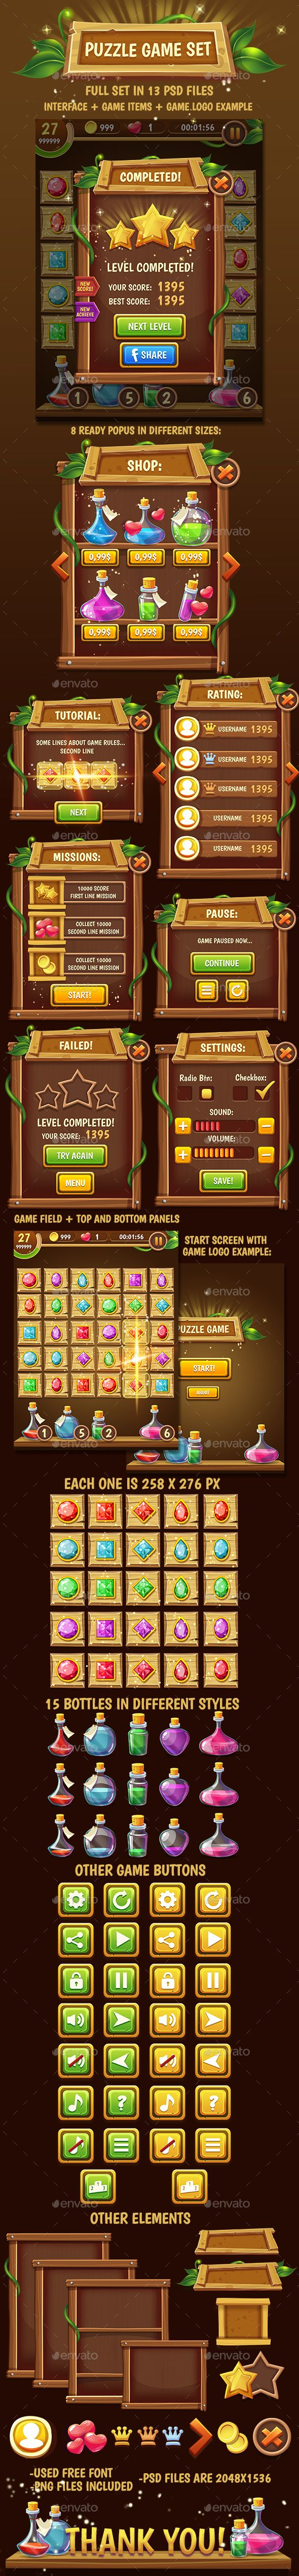 Big Wooden Game Puzzle Set with GUI - Download: http://graphicriver.net/item/big-wooden-game-puzzle-set-with-gui/15801871?ref=sinzo #Game #Kits #GameAssets